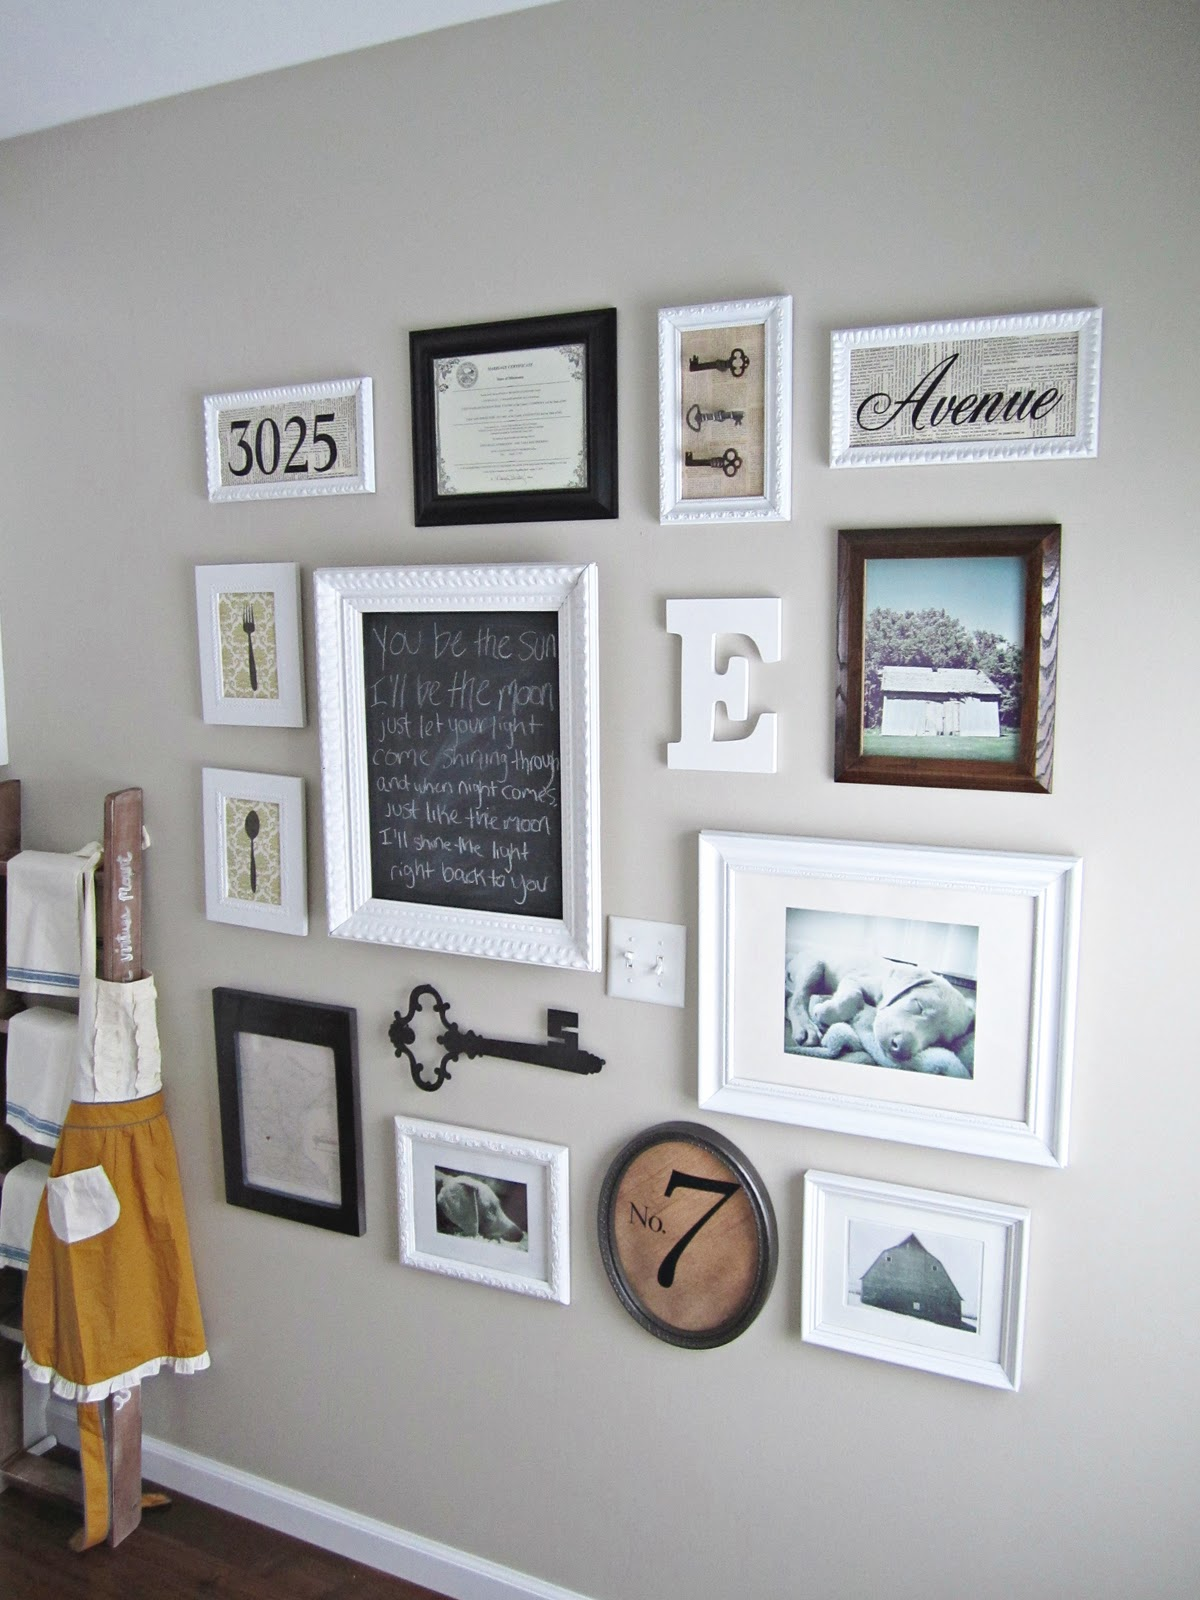 Gallery Wall Ideas With Mirror: Behind The Red Barn Door: Gallery Wall